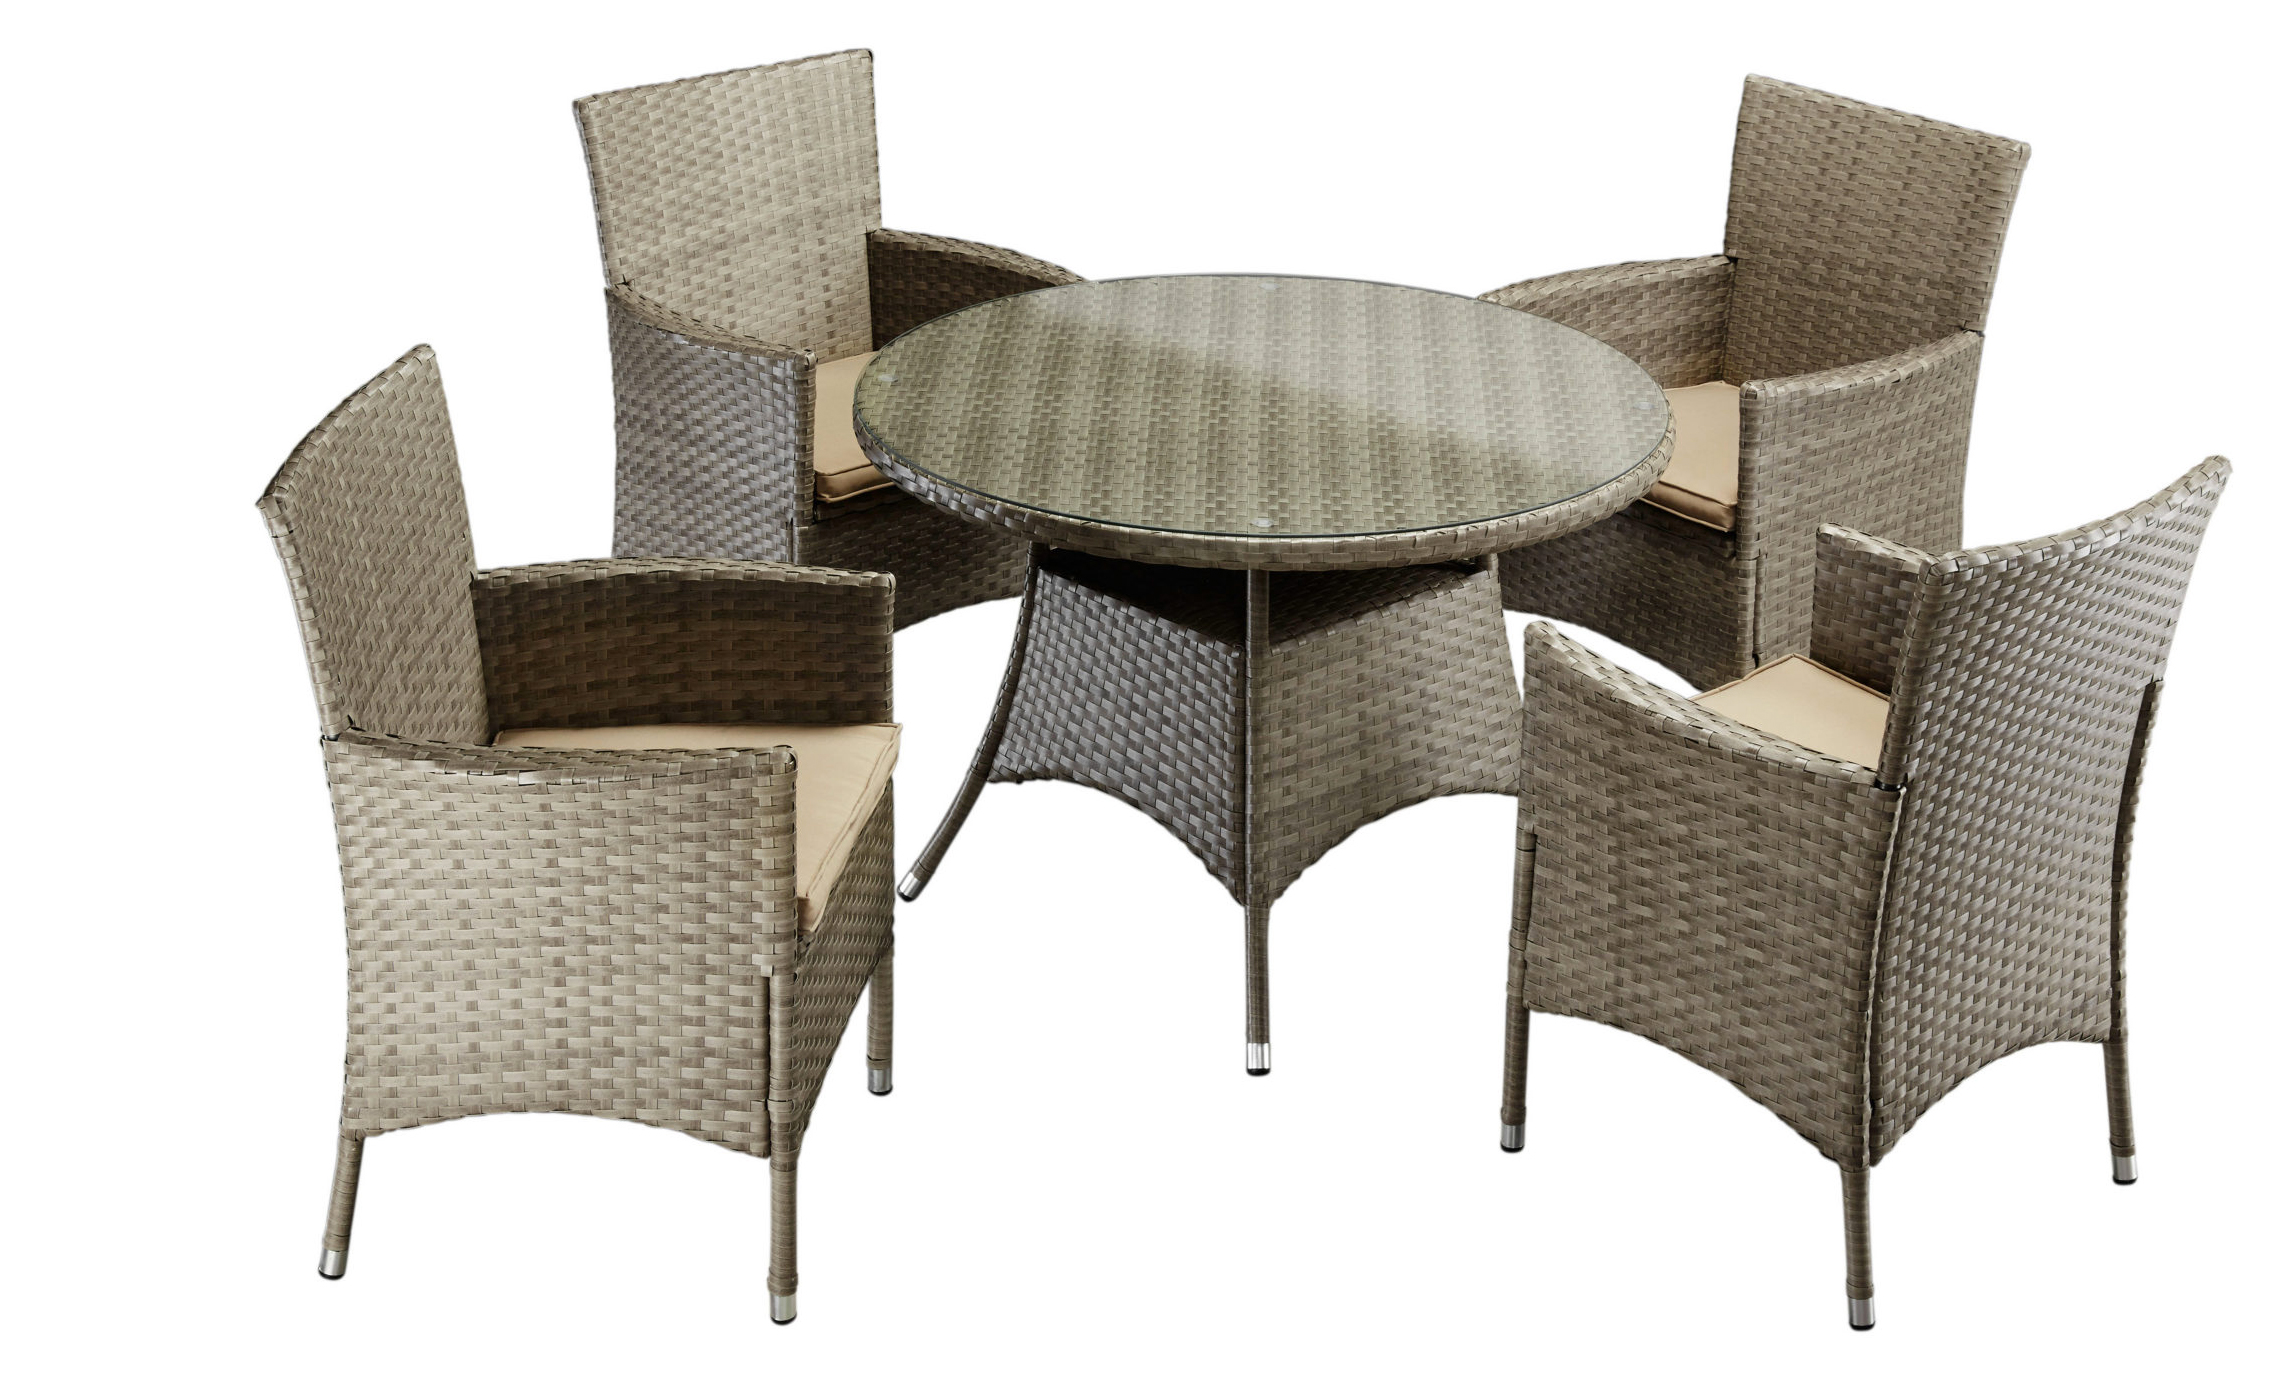 gartengruppe essgruppe garten tisch 100 st hle auflage polyrattan 9 tlg 7150320 ebay. Black Bedroom Furniture Sets. Home Design Ideas